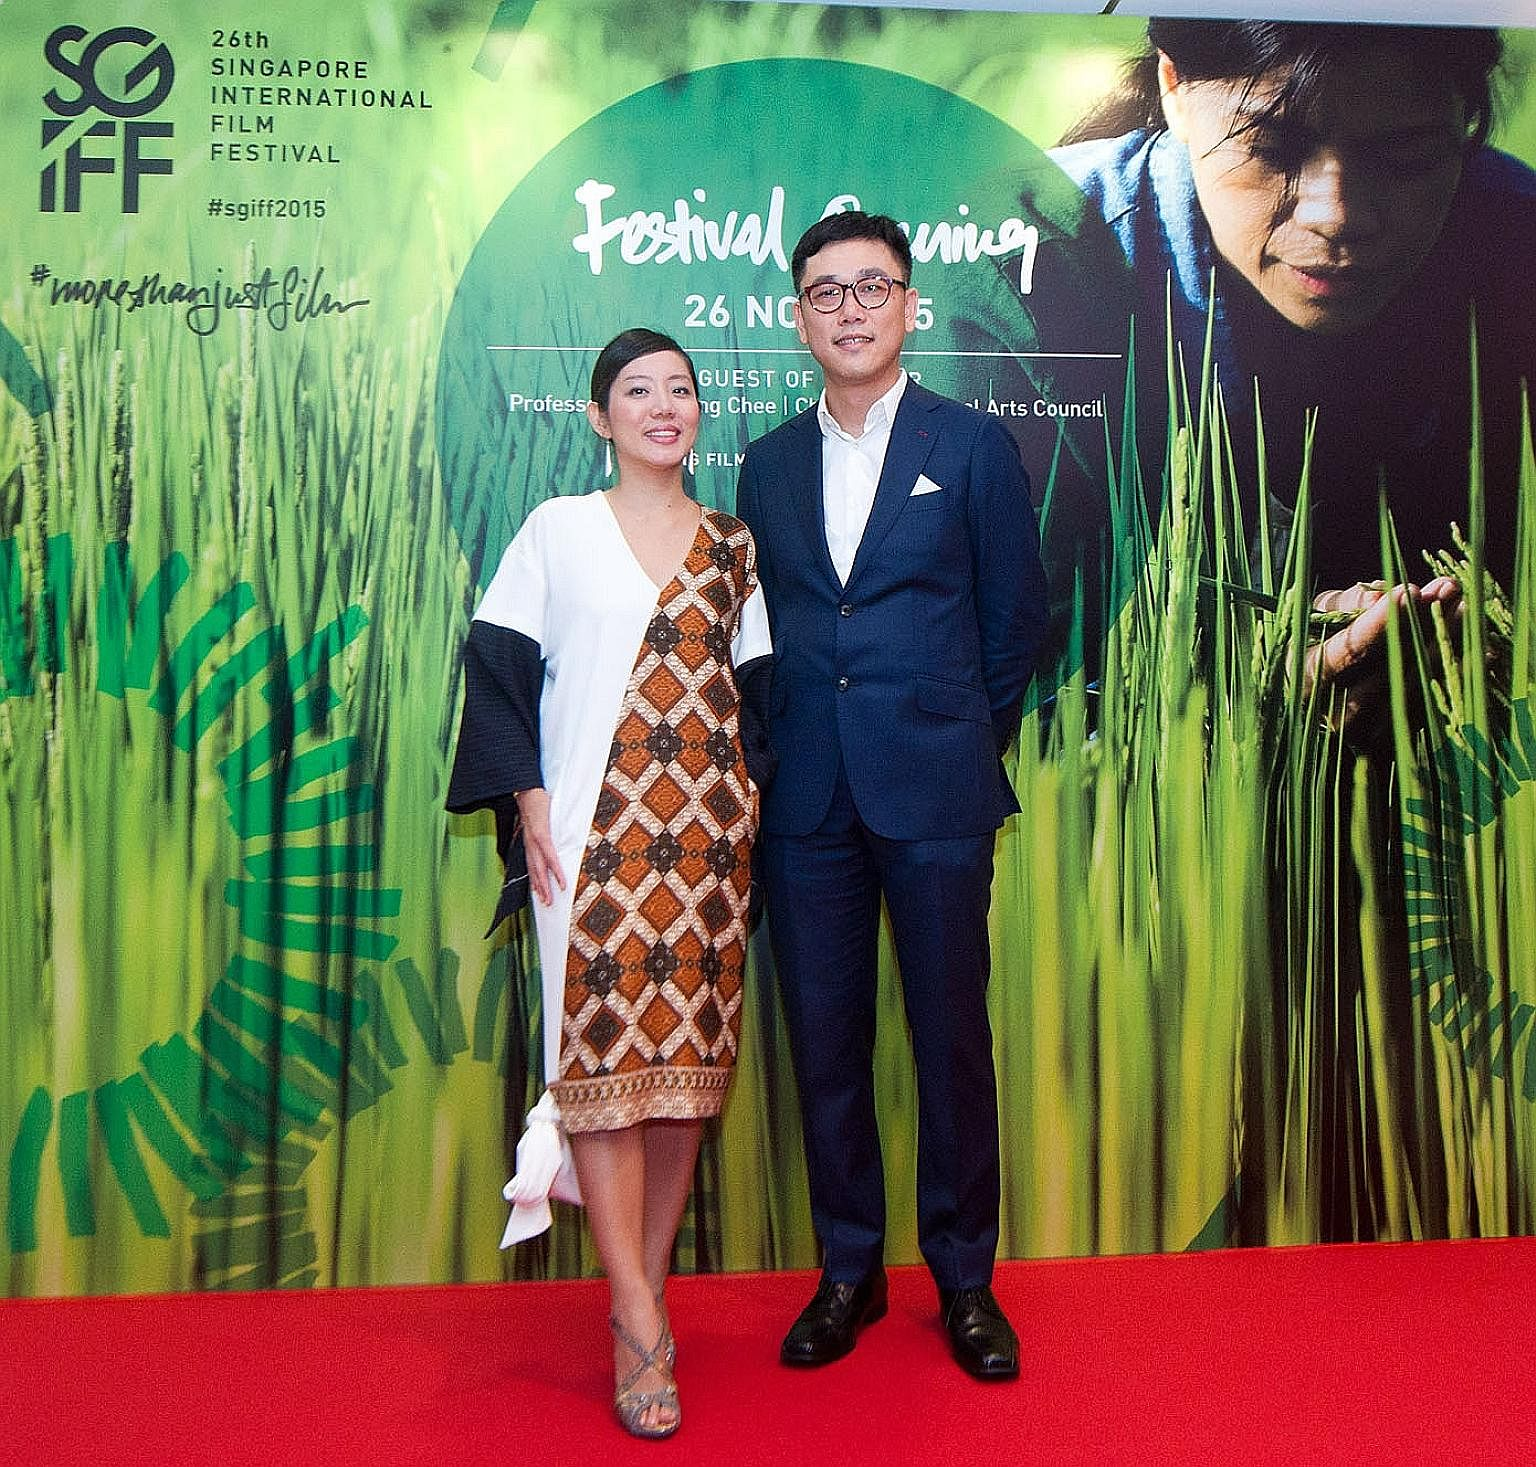 Ms Yuni Hadi, the Singapore International Film Festival's executive director, and Mr Zhang Wenjie, who has quit as its festival director, at its 2015 edition.